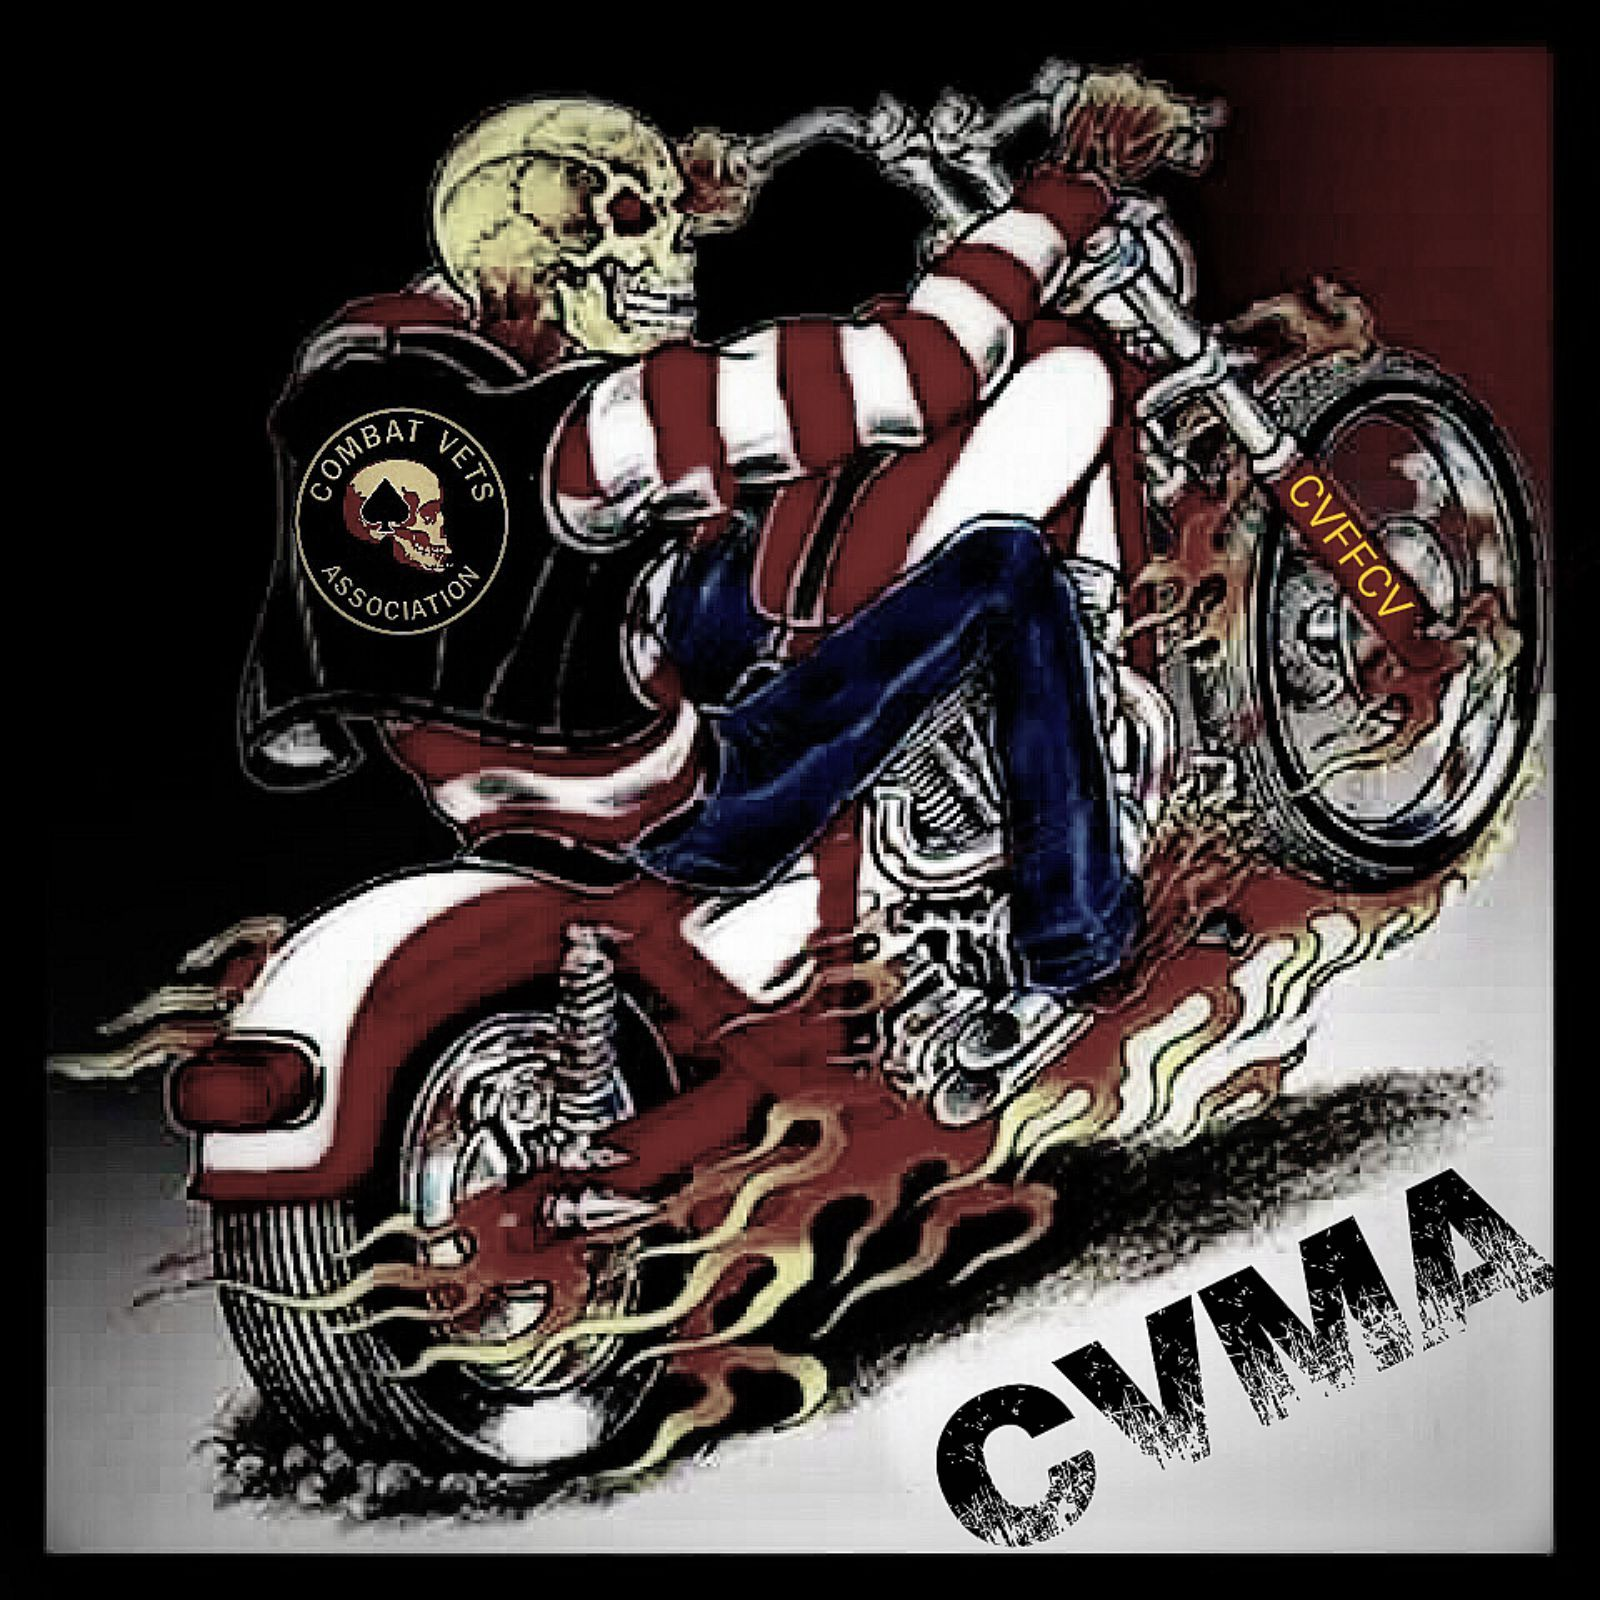 Pin by david byrd on combat vets motorcycle association for Association of professional tattoo artists